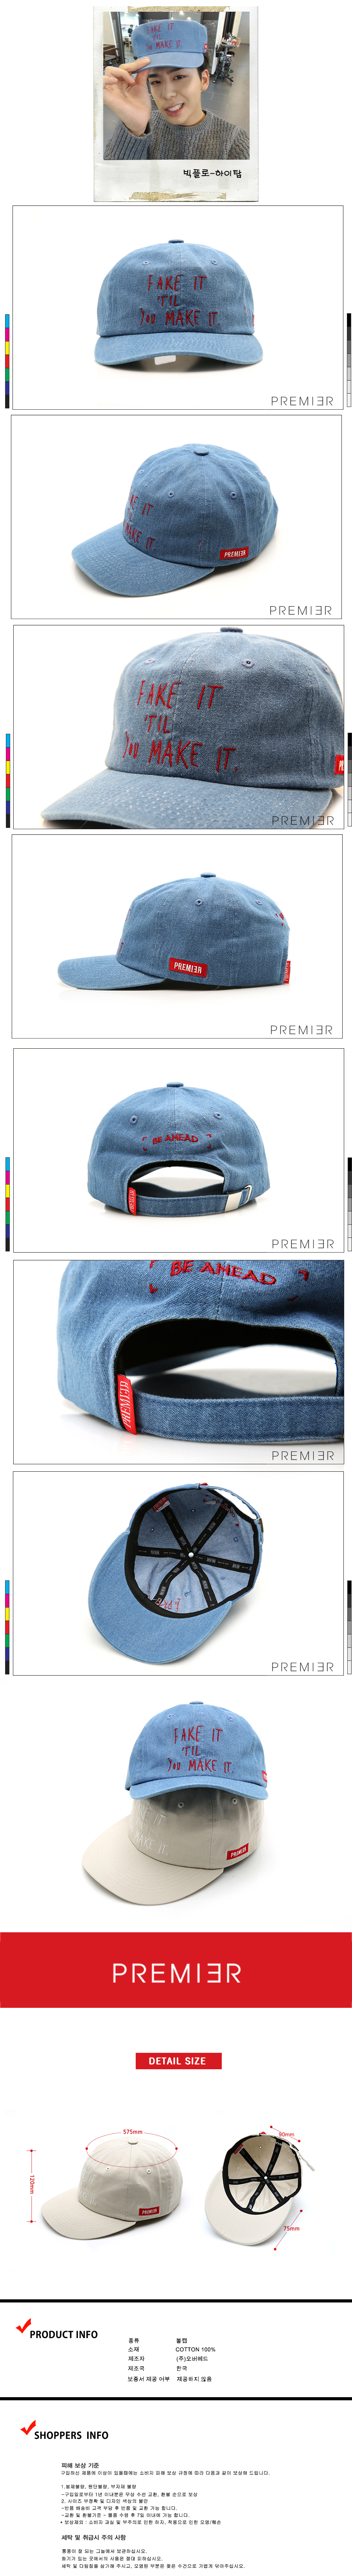 [ PREMIER ] [Premier] Washing Ball Cap MAKE IT 인디고 (P759)